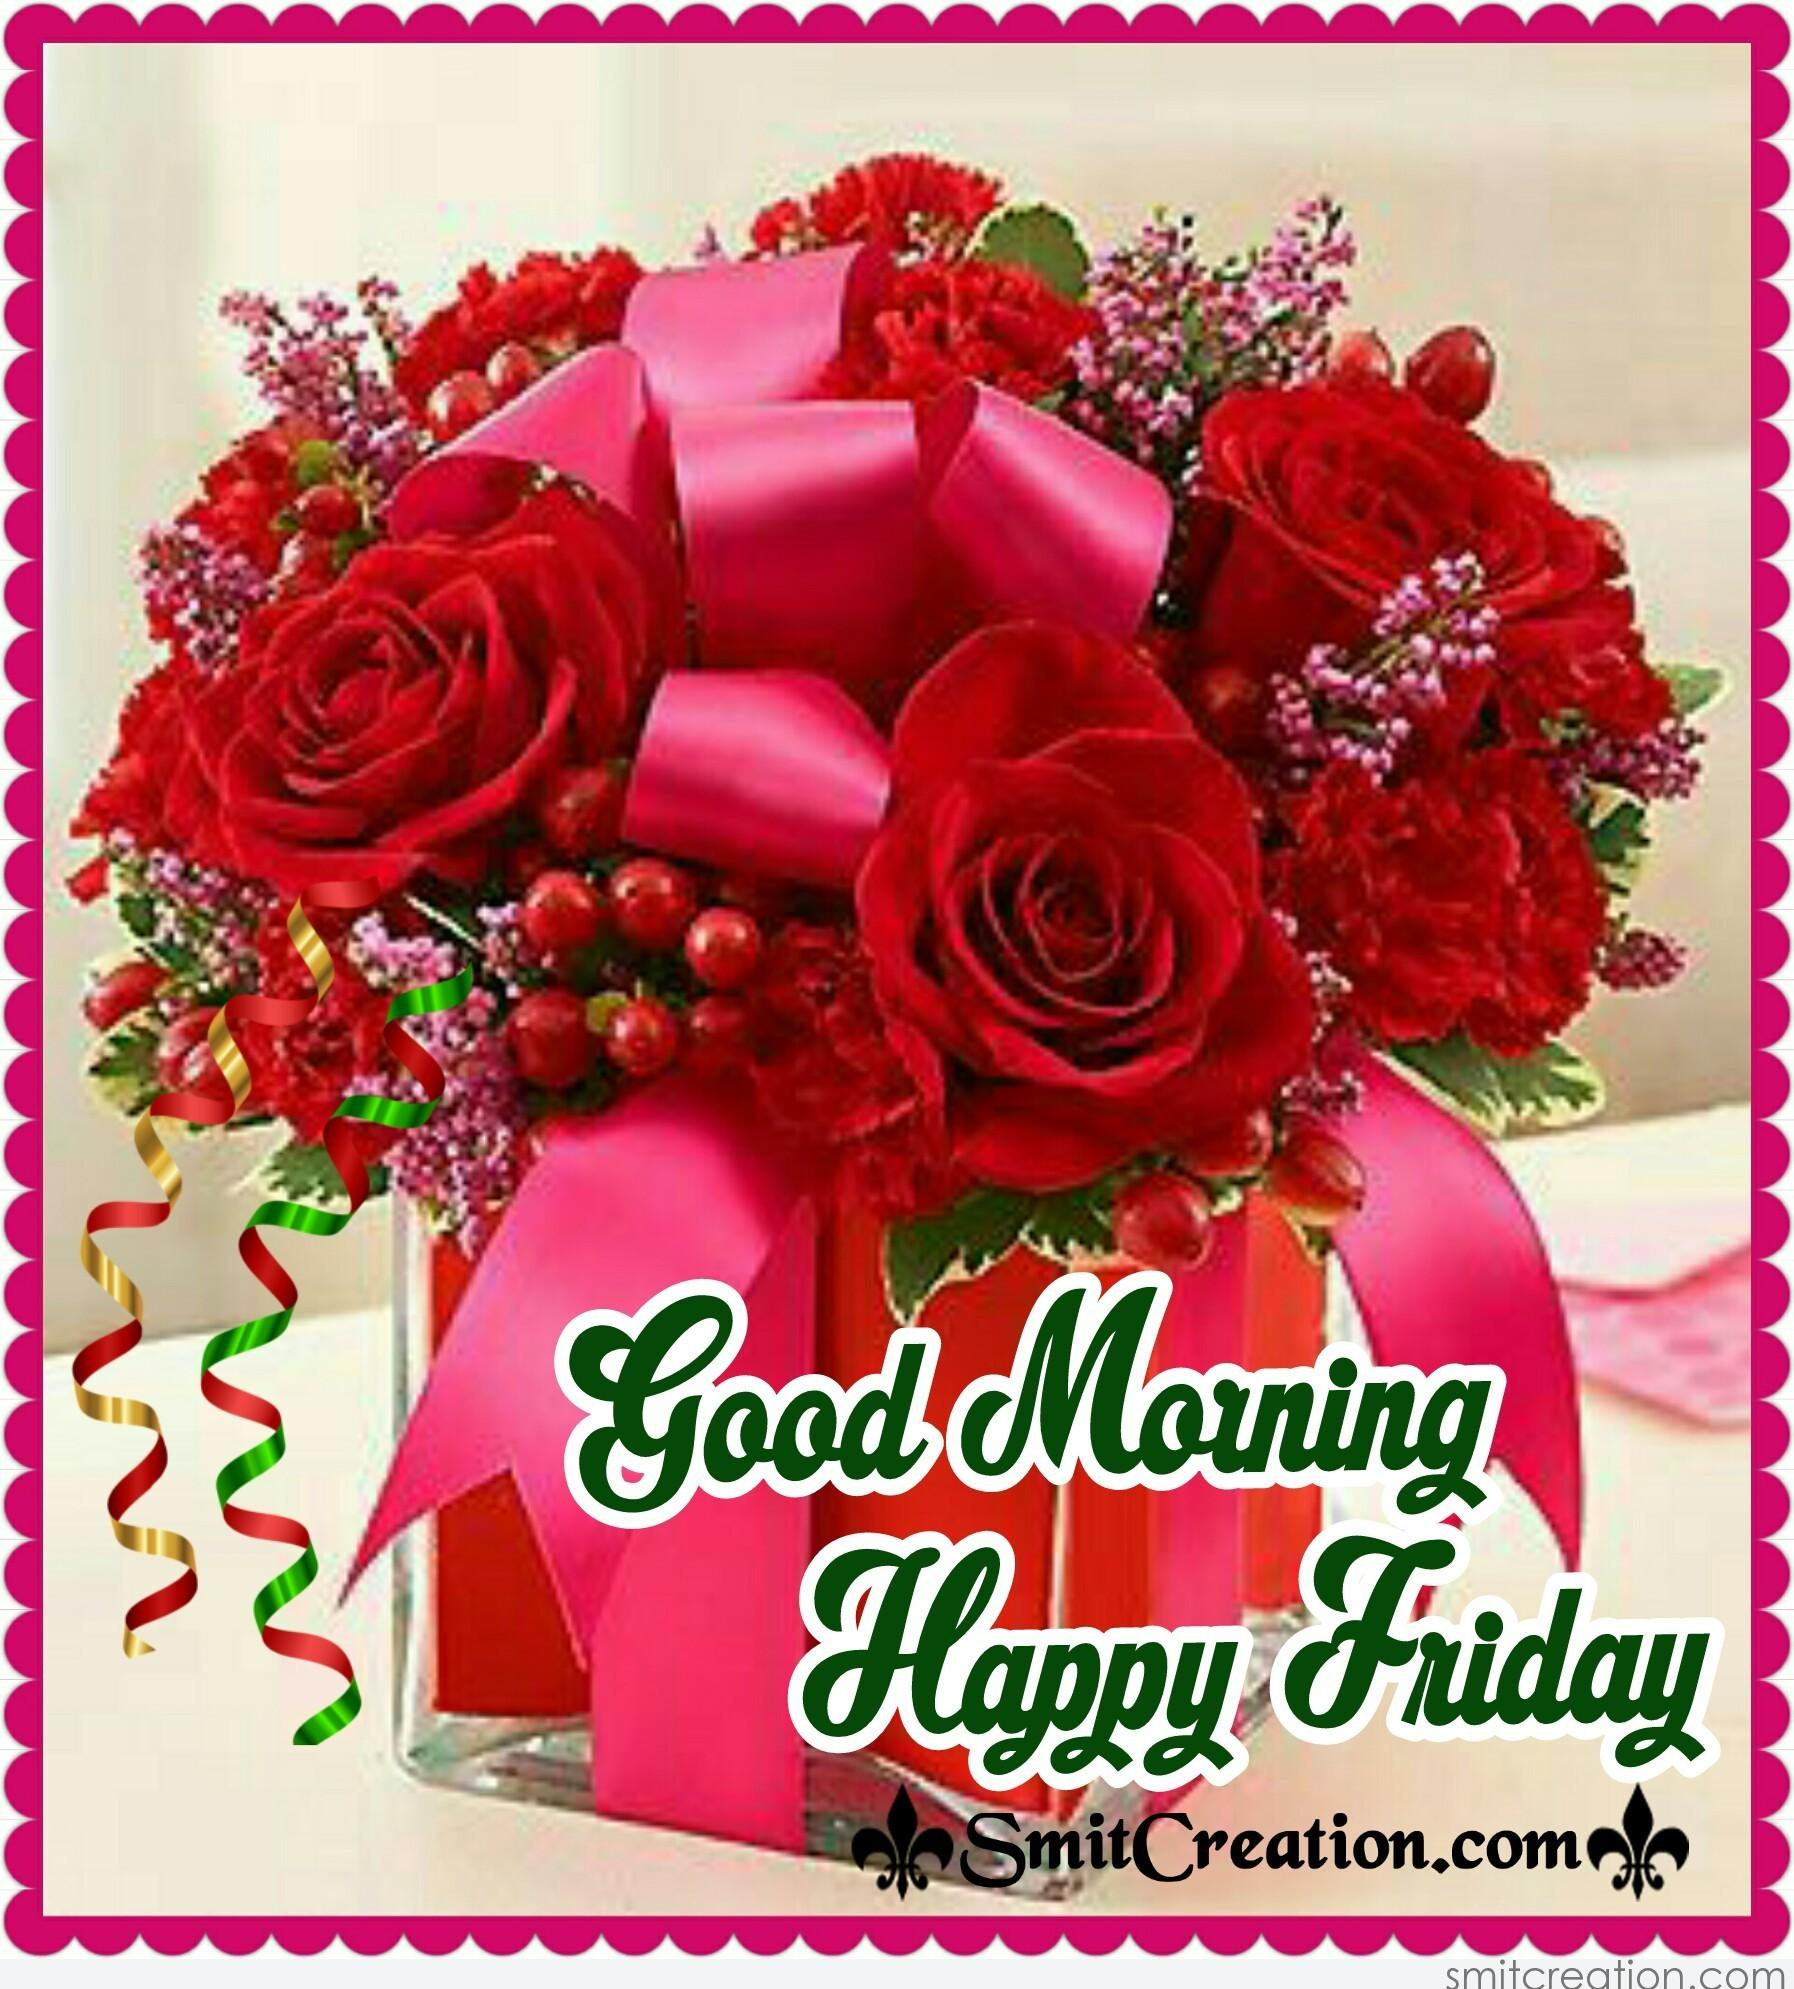 Good Morning Happy Friday Smitcreationcom